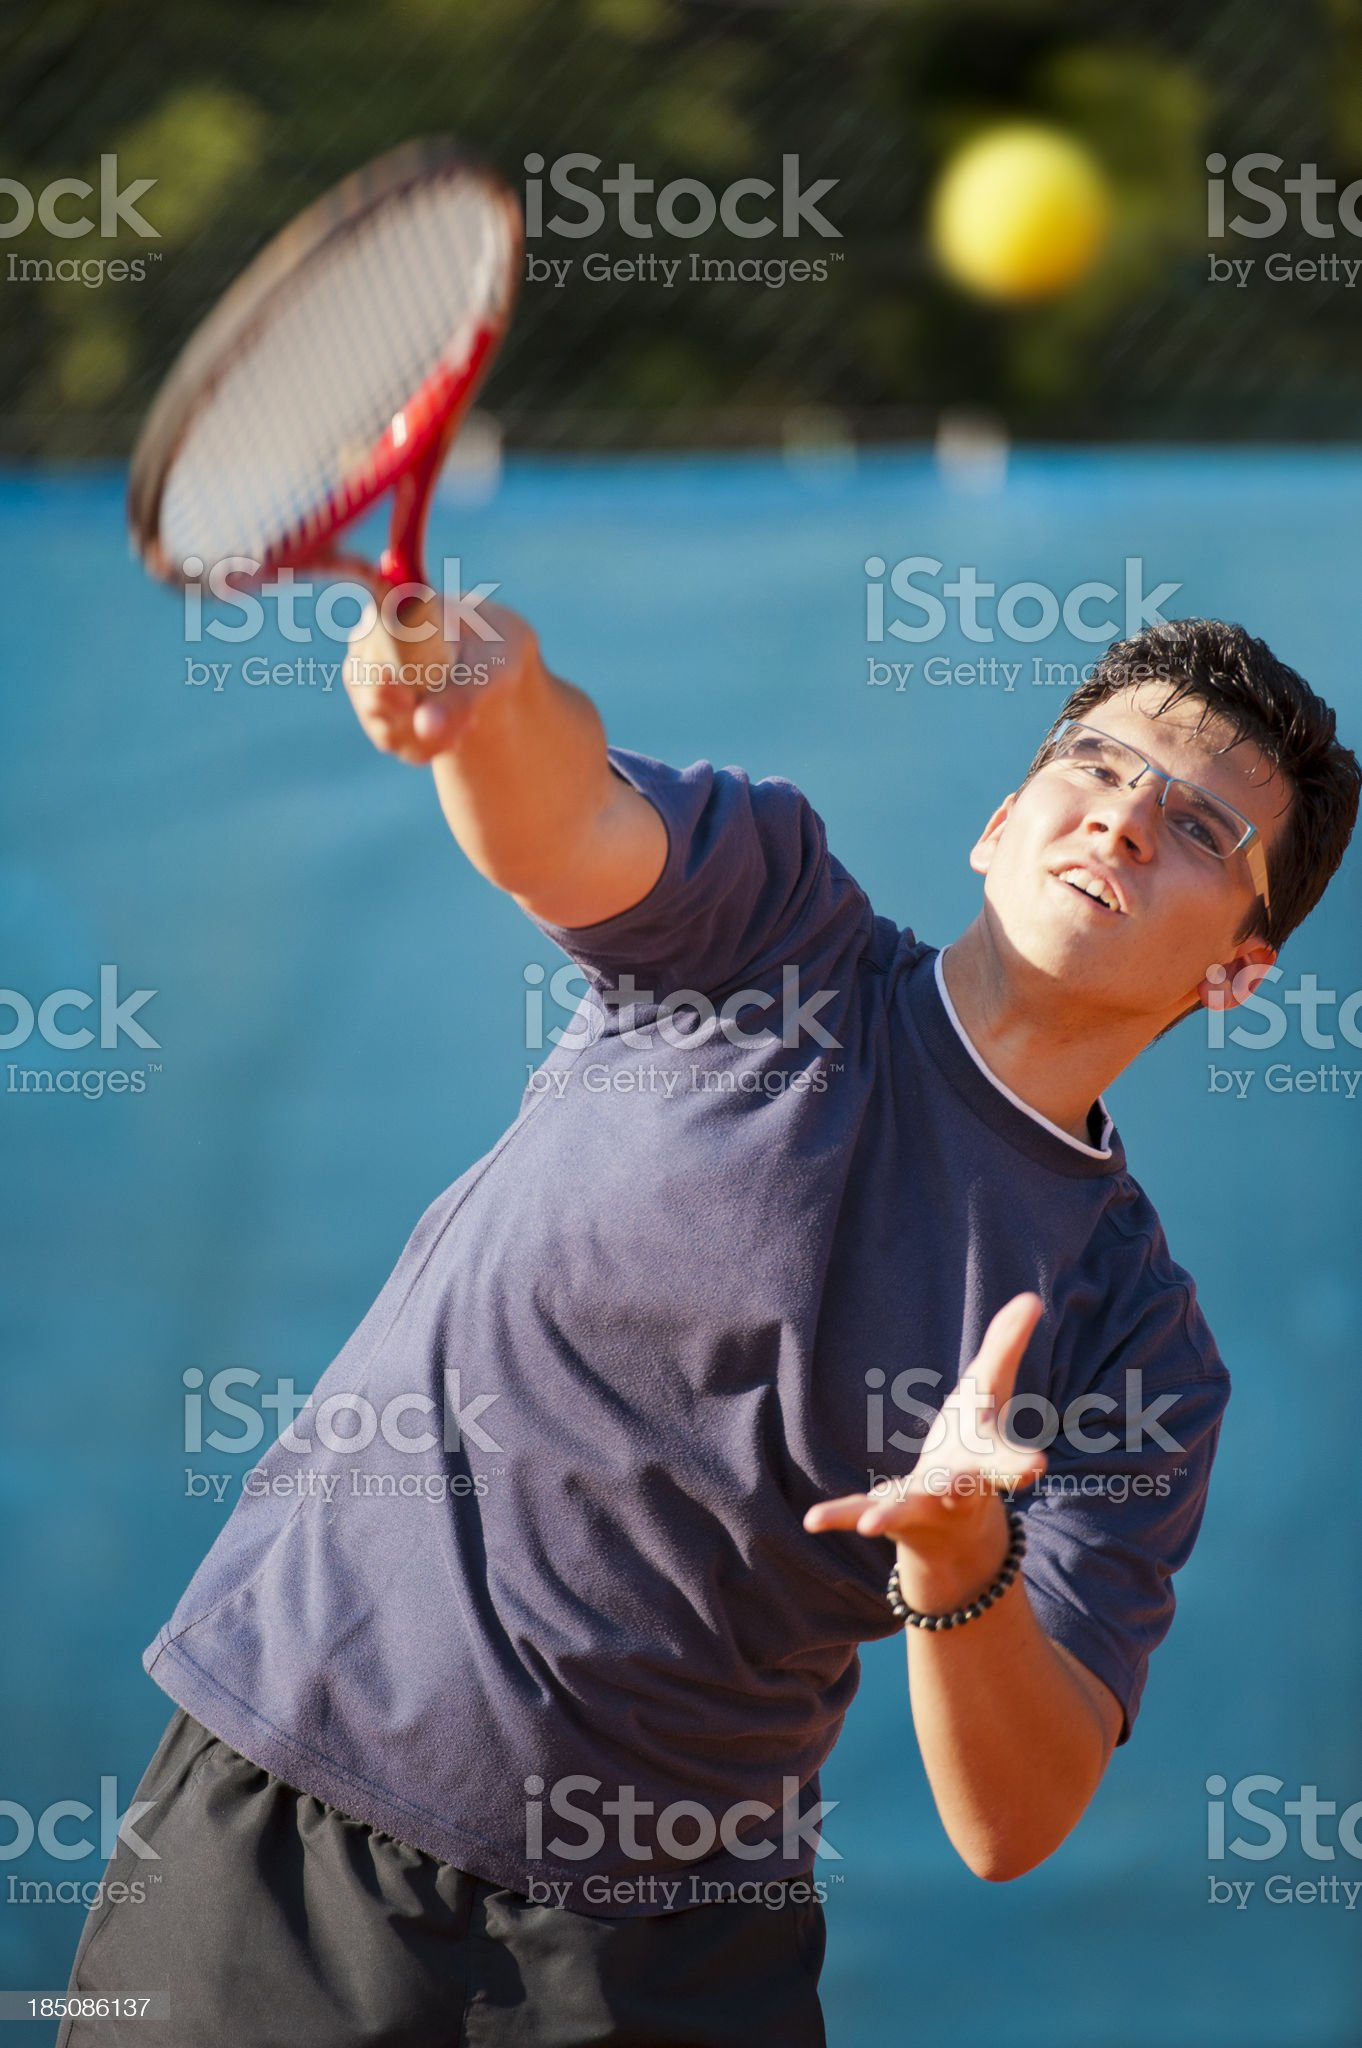 Tennis player serving royalty-free stock photo